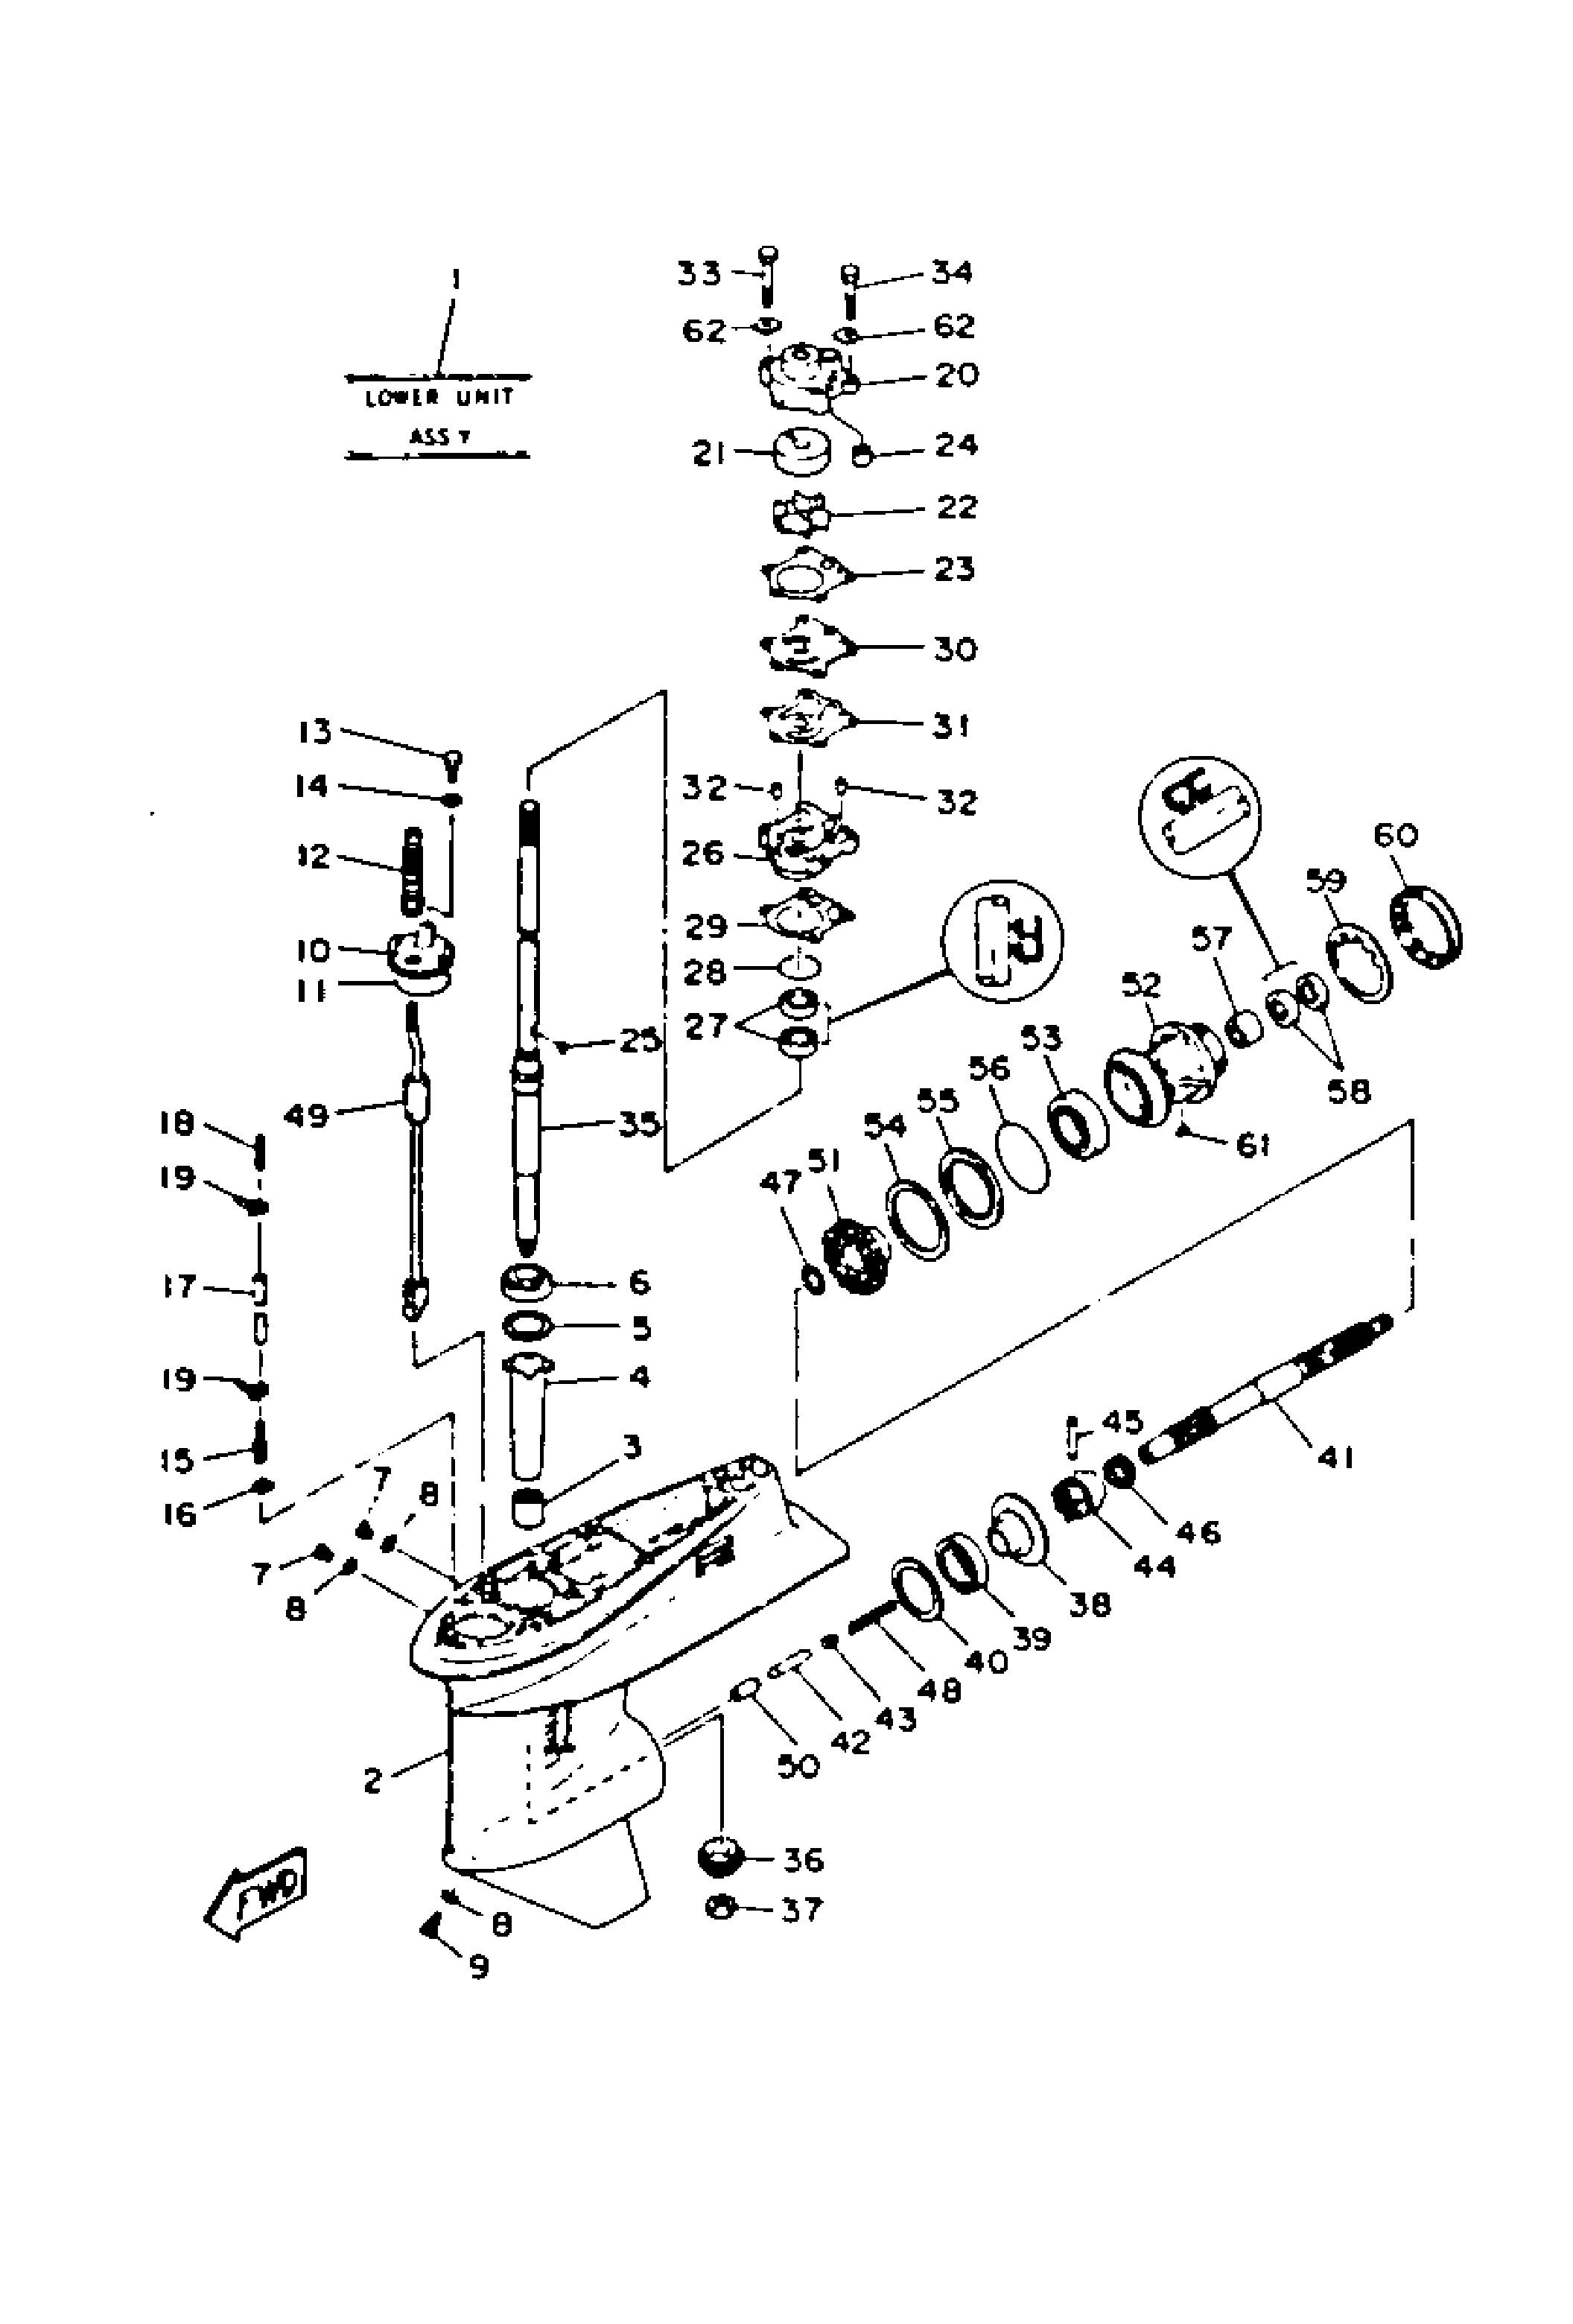 90 Hp Johnson Outboard Wiring Diagram Schematic | Wiring Diagram Johnson Hp Wiring Diagram on 40 hp johnson diagram, 55 hp johnson diagram, 4 hp johnson diagram, 20 hp johnson diagram, 30 hp johnson diagram, 6 hp johnson diagram, 90 hp johnson diagram, 18 hp johnson diagram,